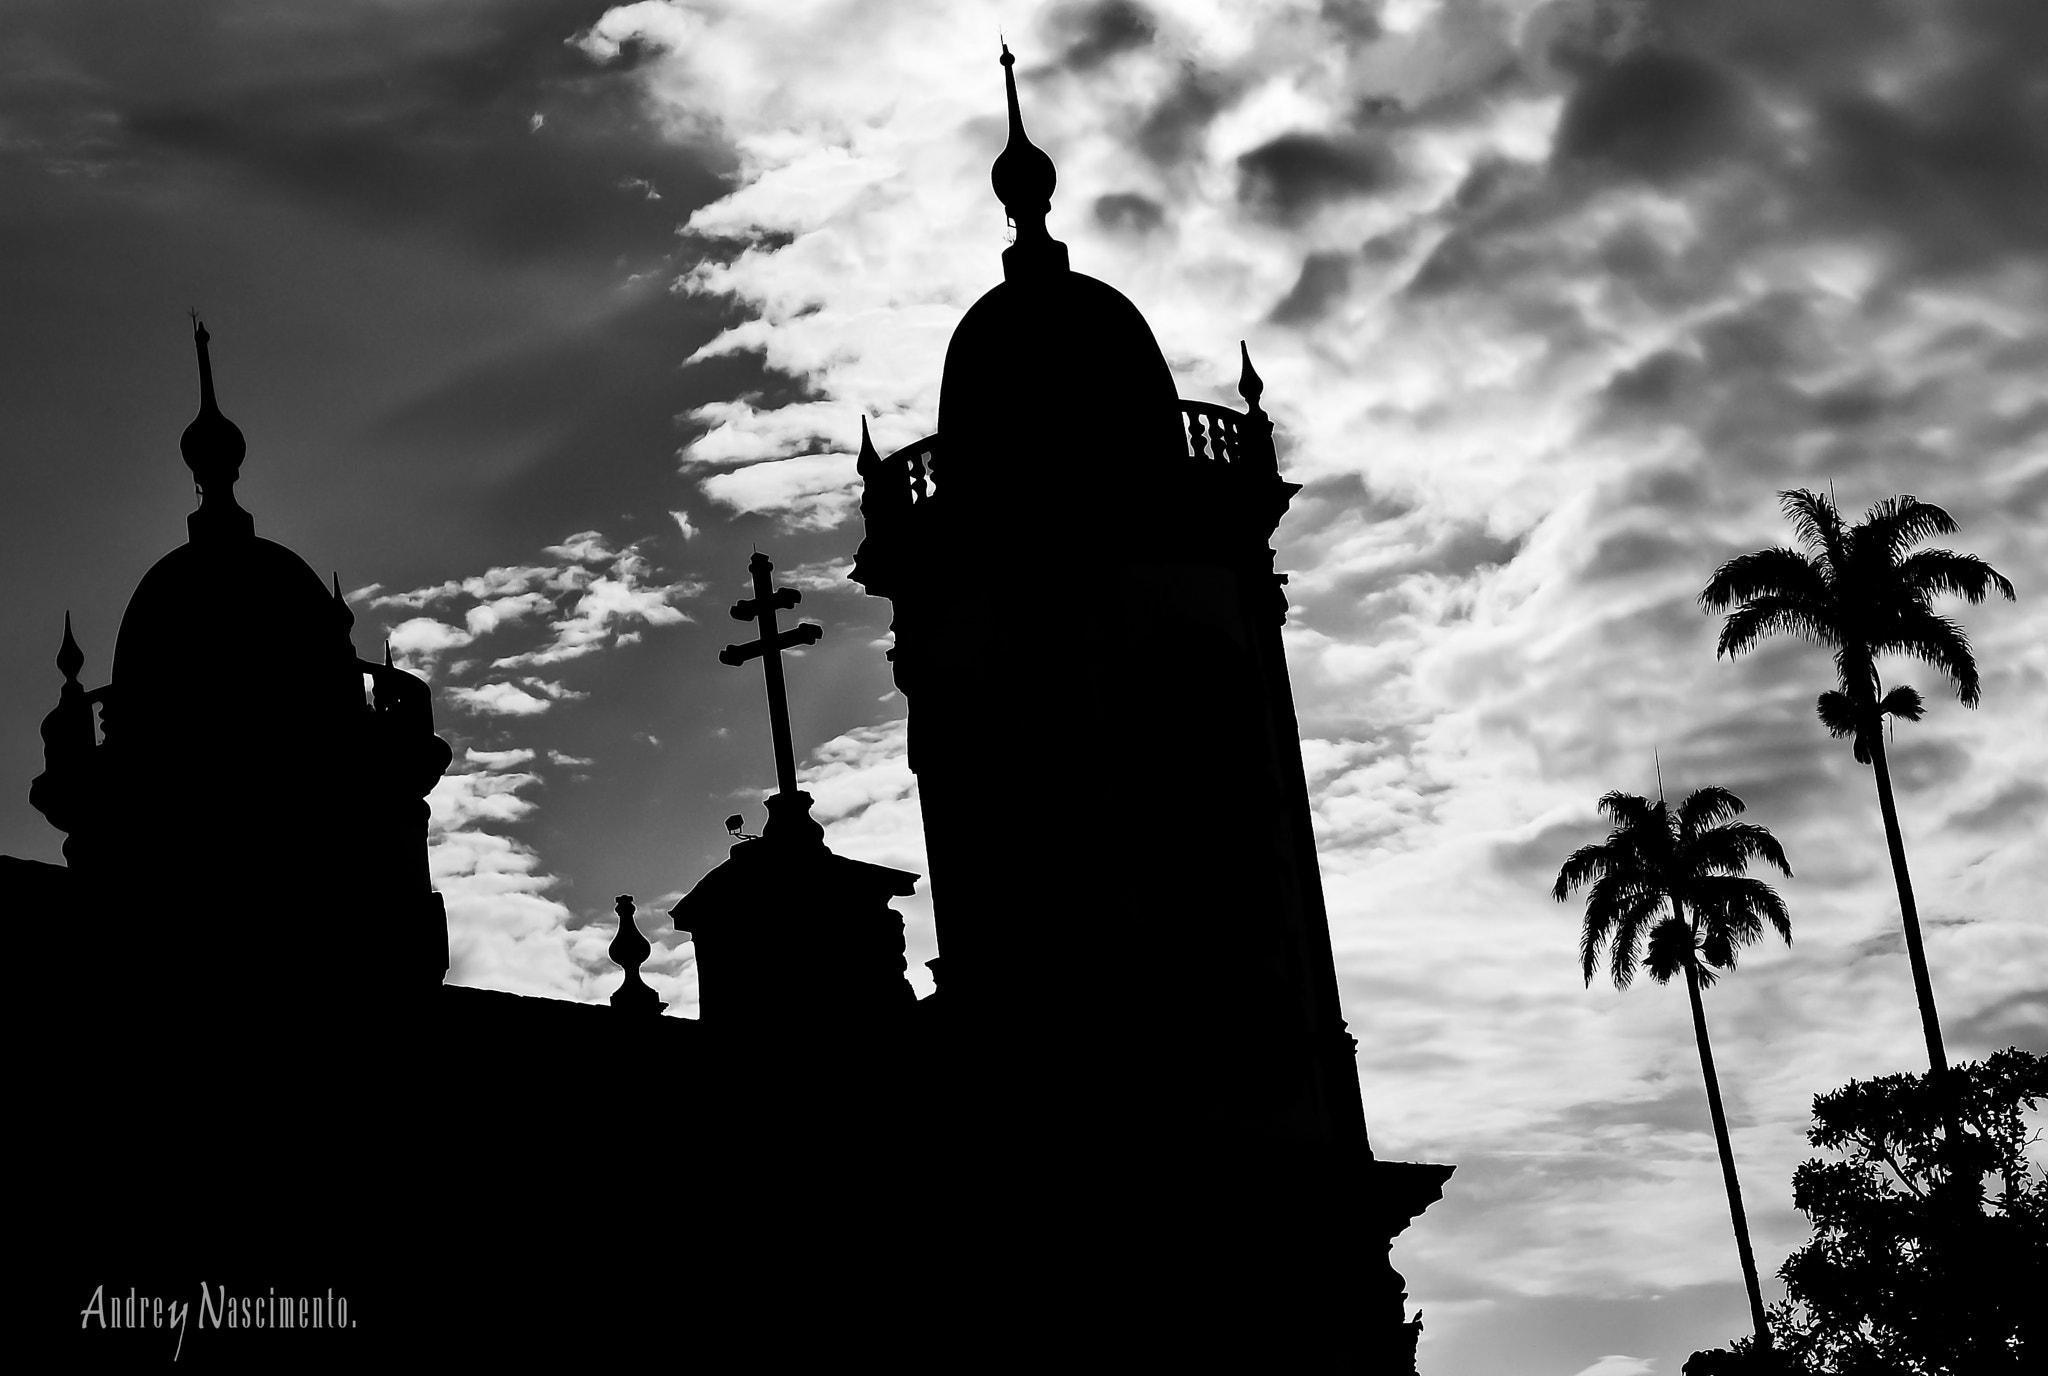 Photograph São João del Rei Church Backlighting by Andrey Nascimento on 500px